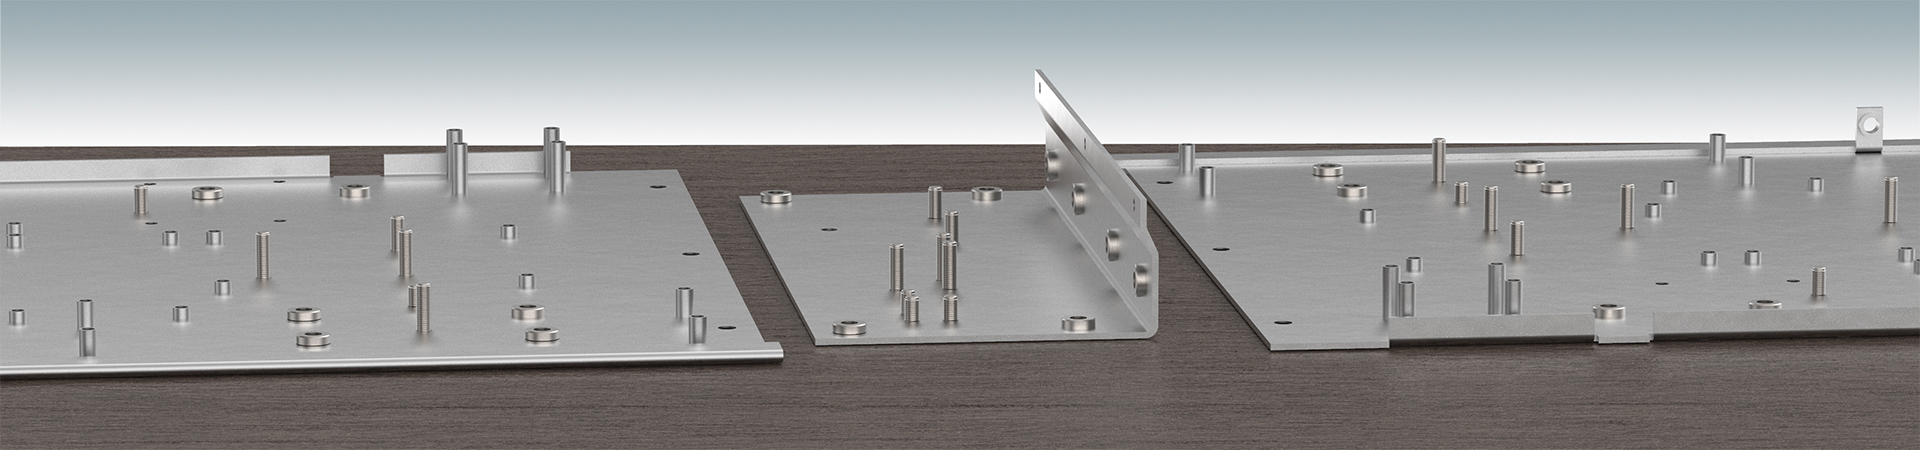 Inserting hardware into sheet metal